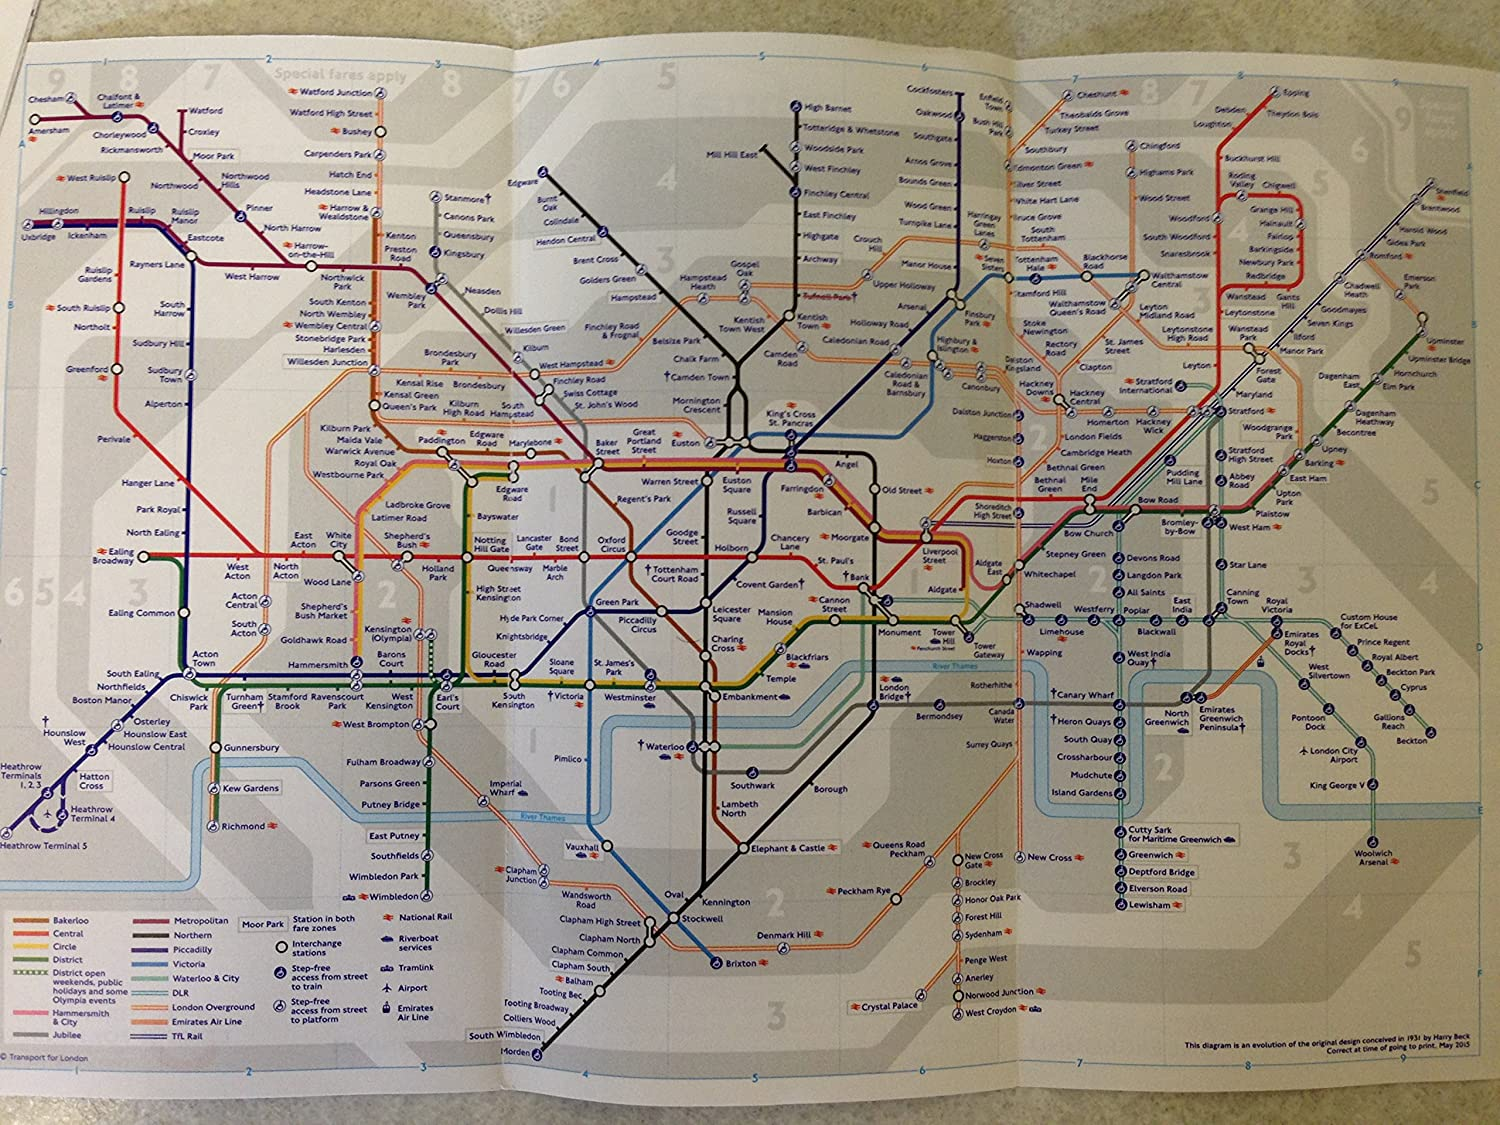 Train Map London Underground.2 X Official London Underground Tube Train Map By Tfl London Subway